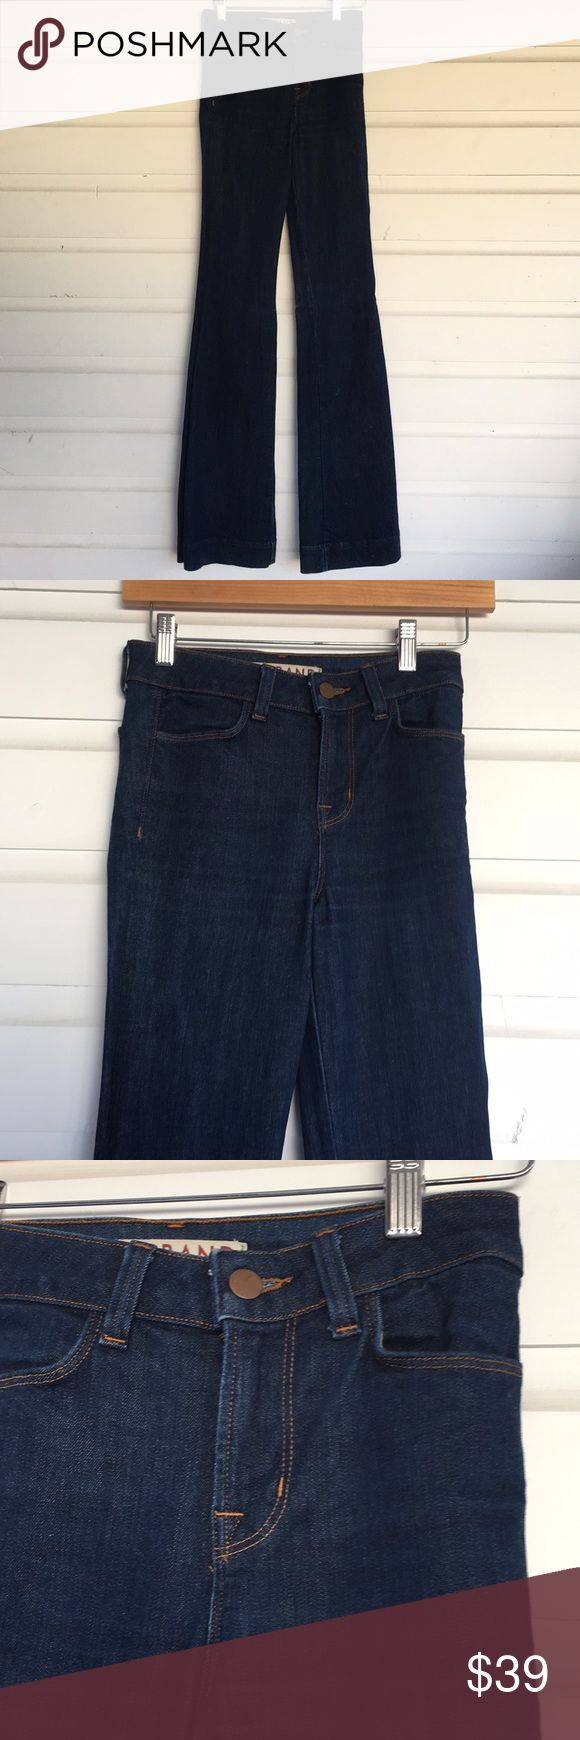 "J Brand The Doll High Rise Bell Jean Indigo Blue J Brand The Doll High Rise Bell Bottom Jean Indigo Blue, 4 pockets, made in CA USA Approx 9.5"" rise, 35"" inseam, Cotton/Elasterall blend. Light wear at hem. Offers always warmly received. J Brand Jeans Flare & Wide Leg"